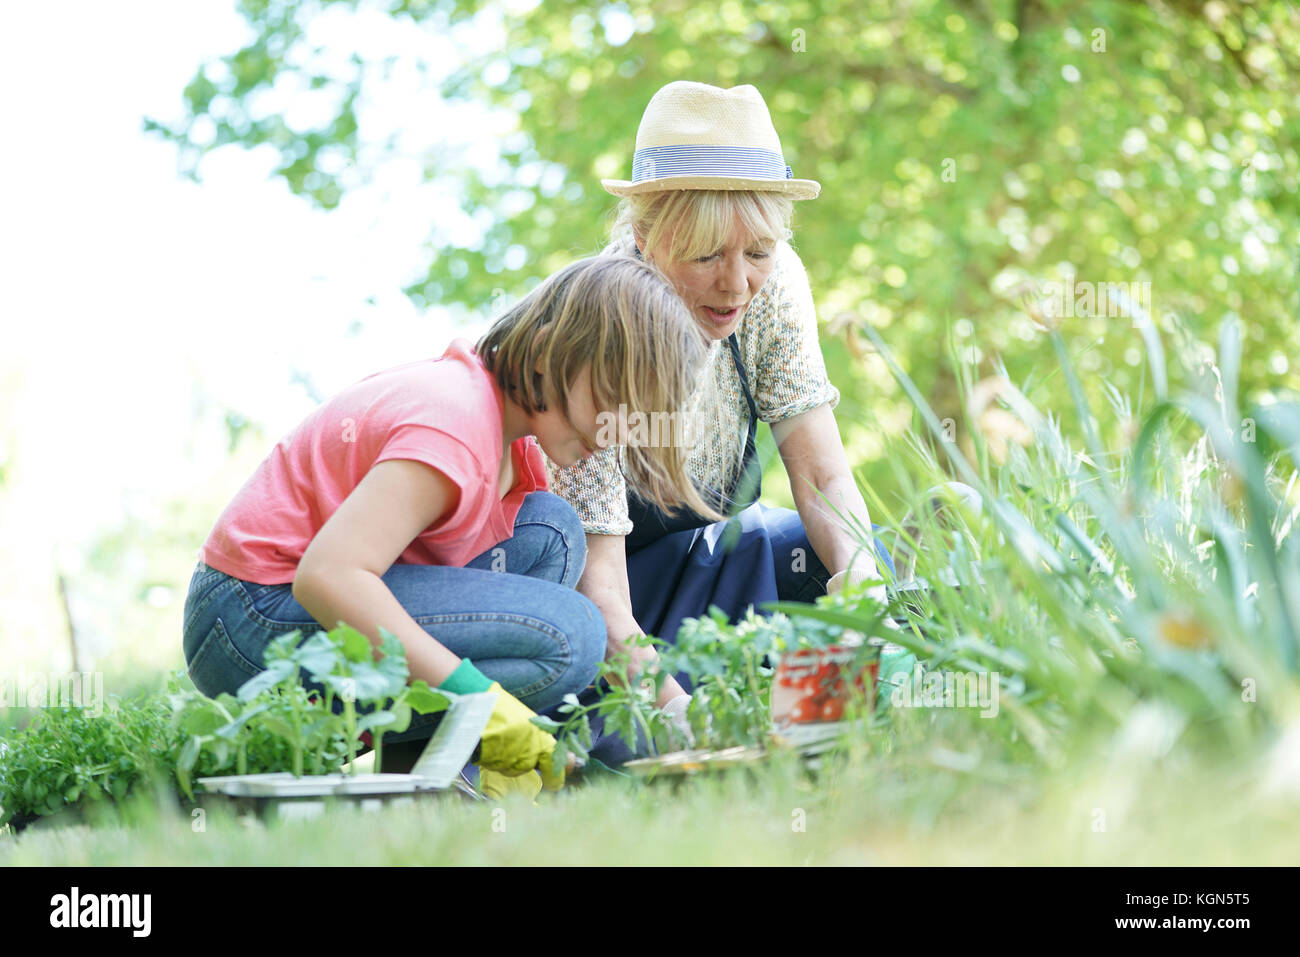 Grandmother and granddaughter gardening together - Stock Image